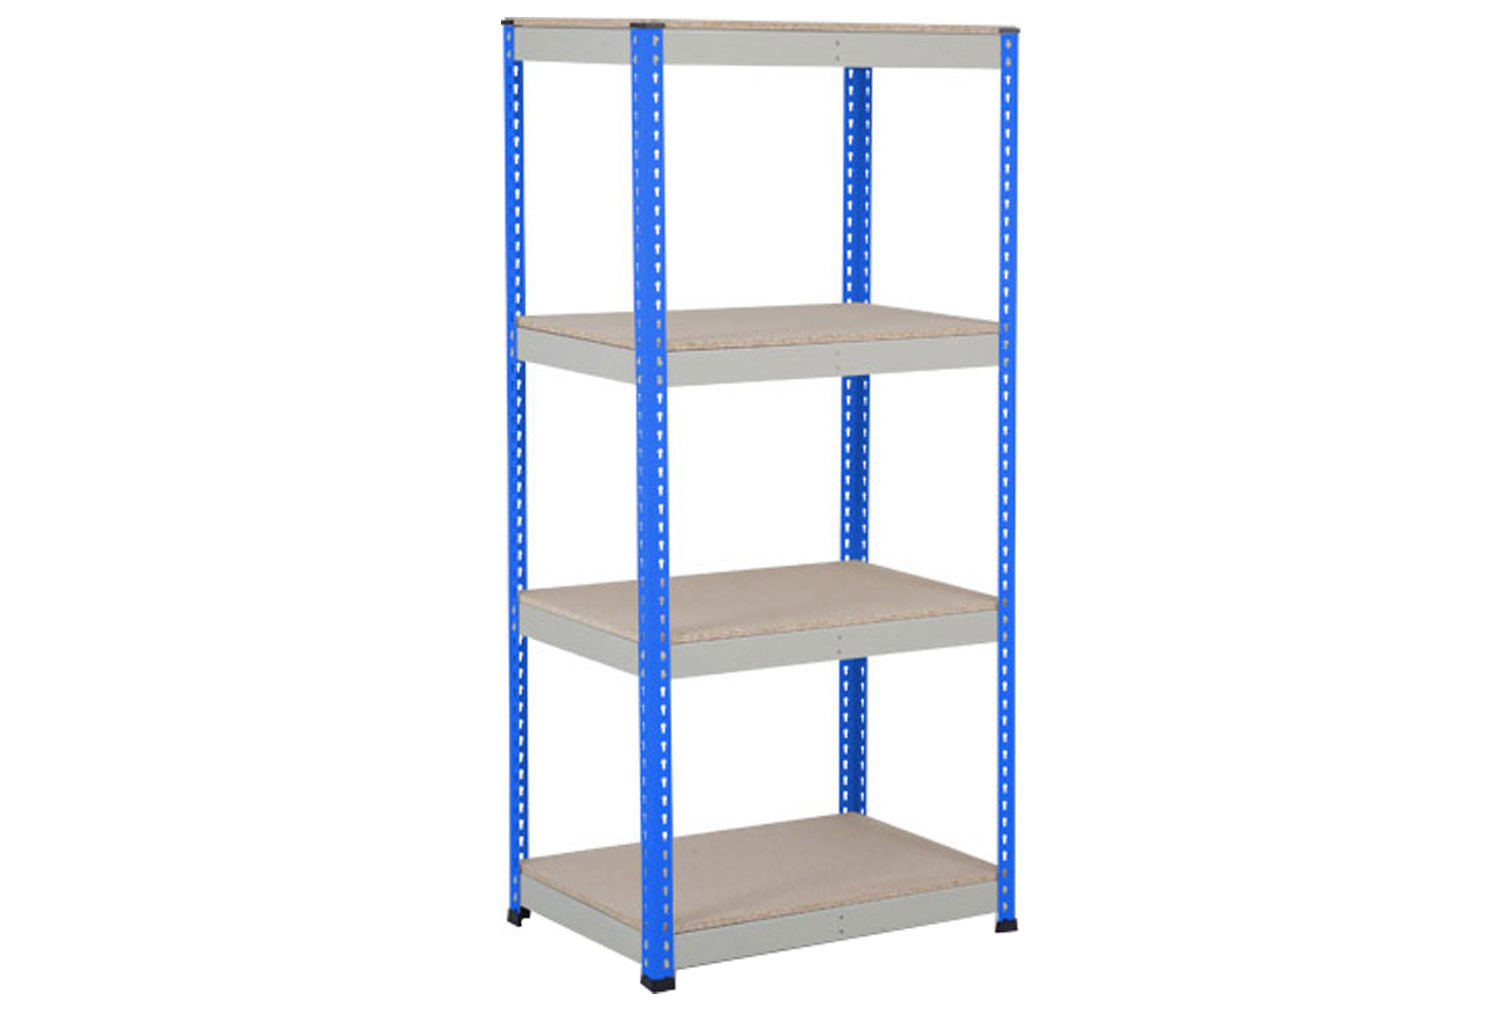 Rapid 1 Heavy Duty Shelving With 4 Chipboard Shelves 915wx1980h (Blue/Grey)